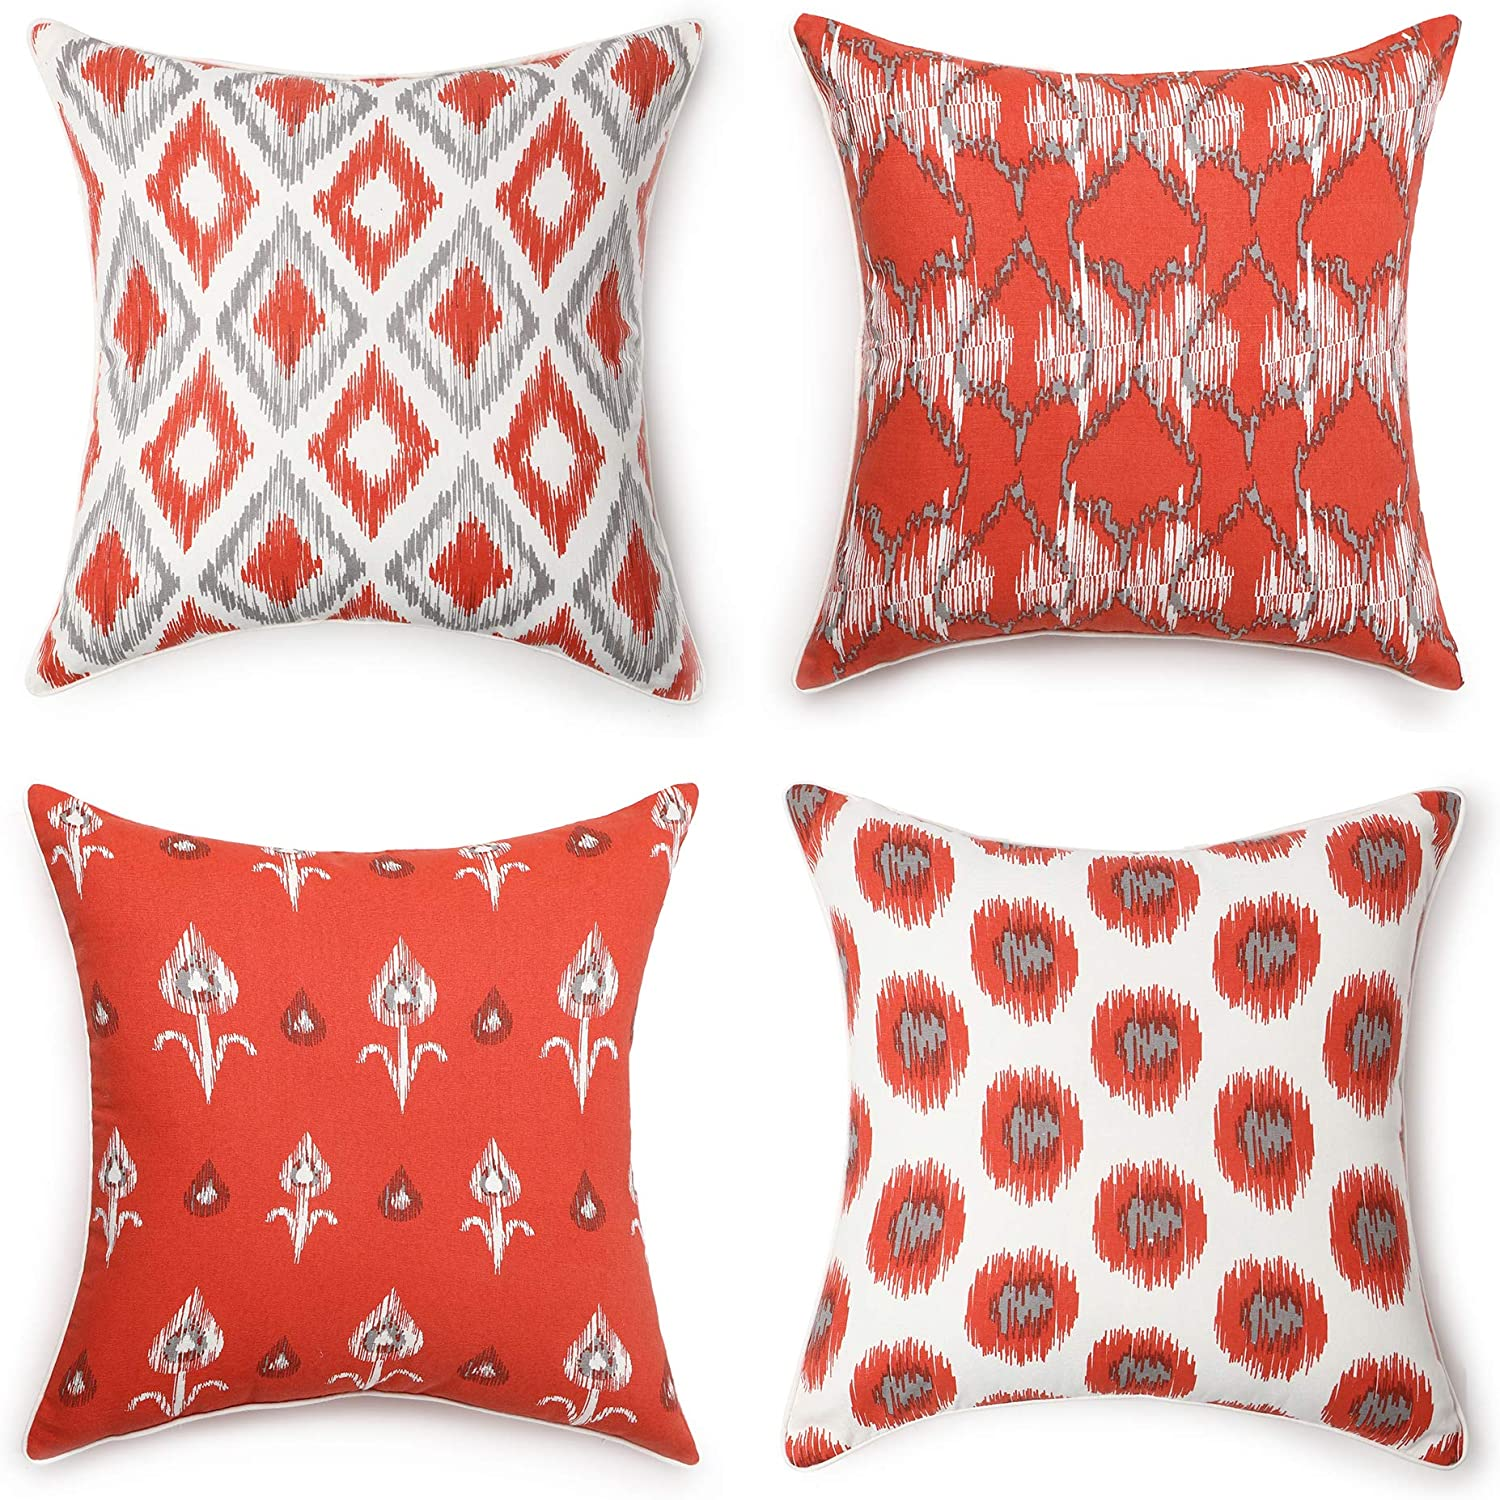 REDEARTH Printed Throw Pillow Cushion Covers-Woven Decorative Farmhouse Cases Set for Couch, Sofa, Bed, Chair, Dining, Patio, Outdoor, car; 100% Cotton (18x18; Tangerine1) Pack of 4